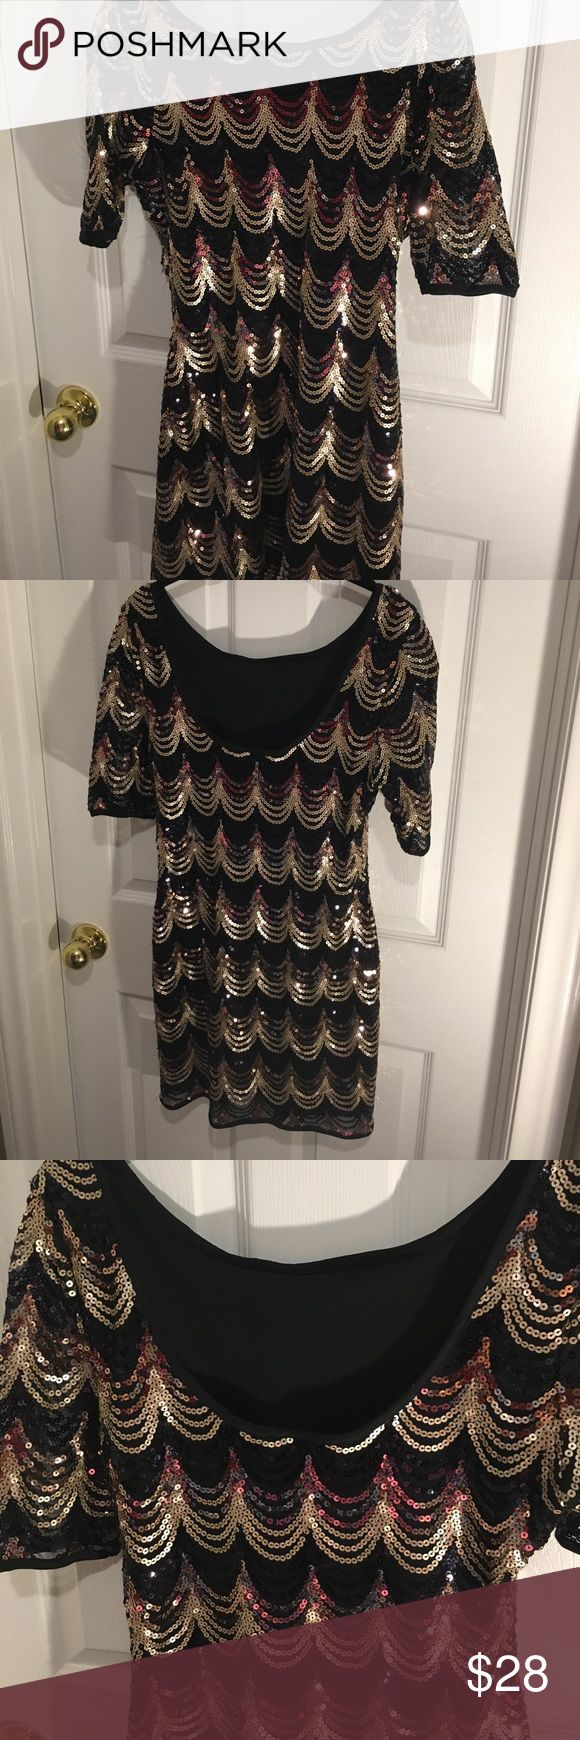 NWOT Shiny Cocktail Venus Sequin Dress Size M / 6 Shiny Sequined Patterned Dress by Venus  , Fully lined , hand washable - would fit a 6 perfectly ( labeled as M). No tags . This dress shows no signs of wear and has no flaws 👌Lower in back than in front , 1/2 sleeve. VENUS Dresses